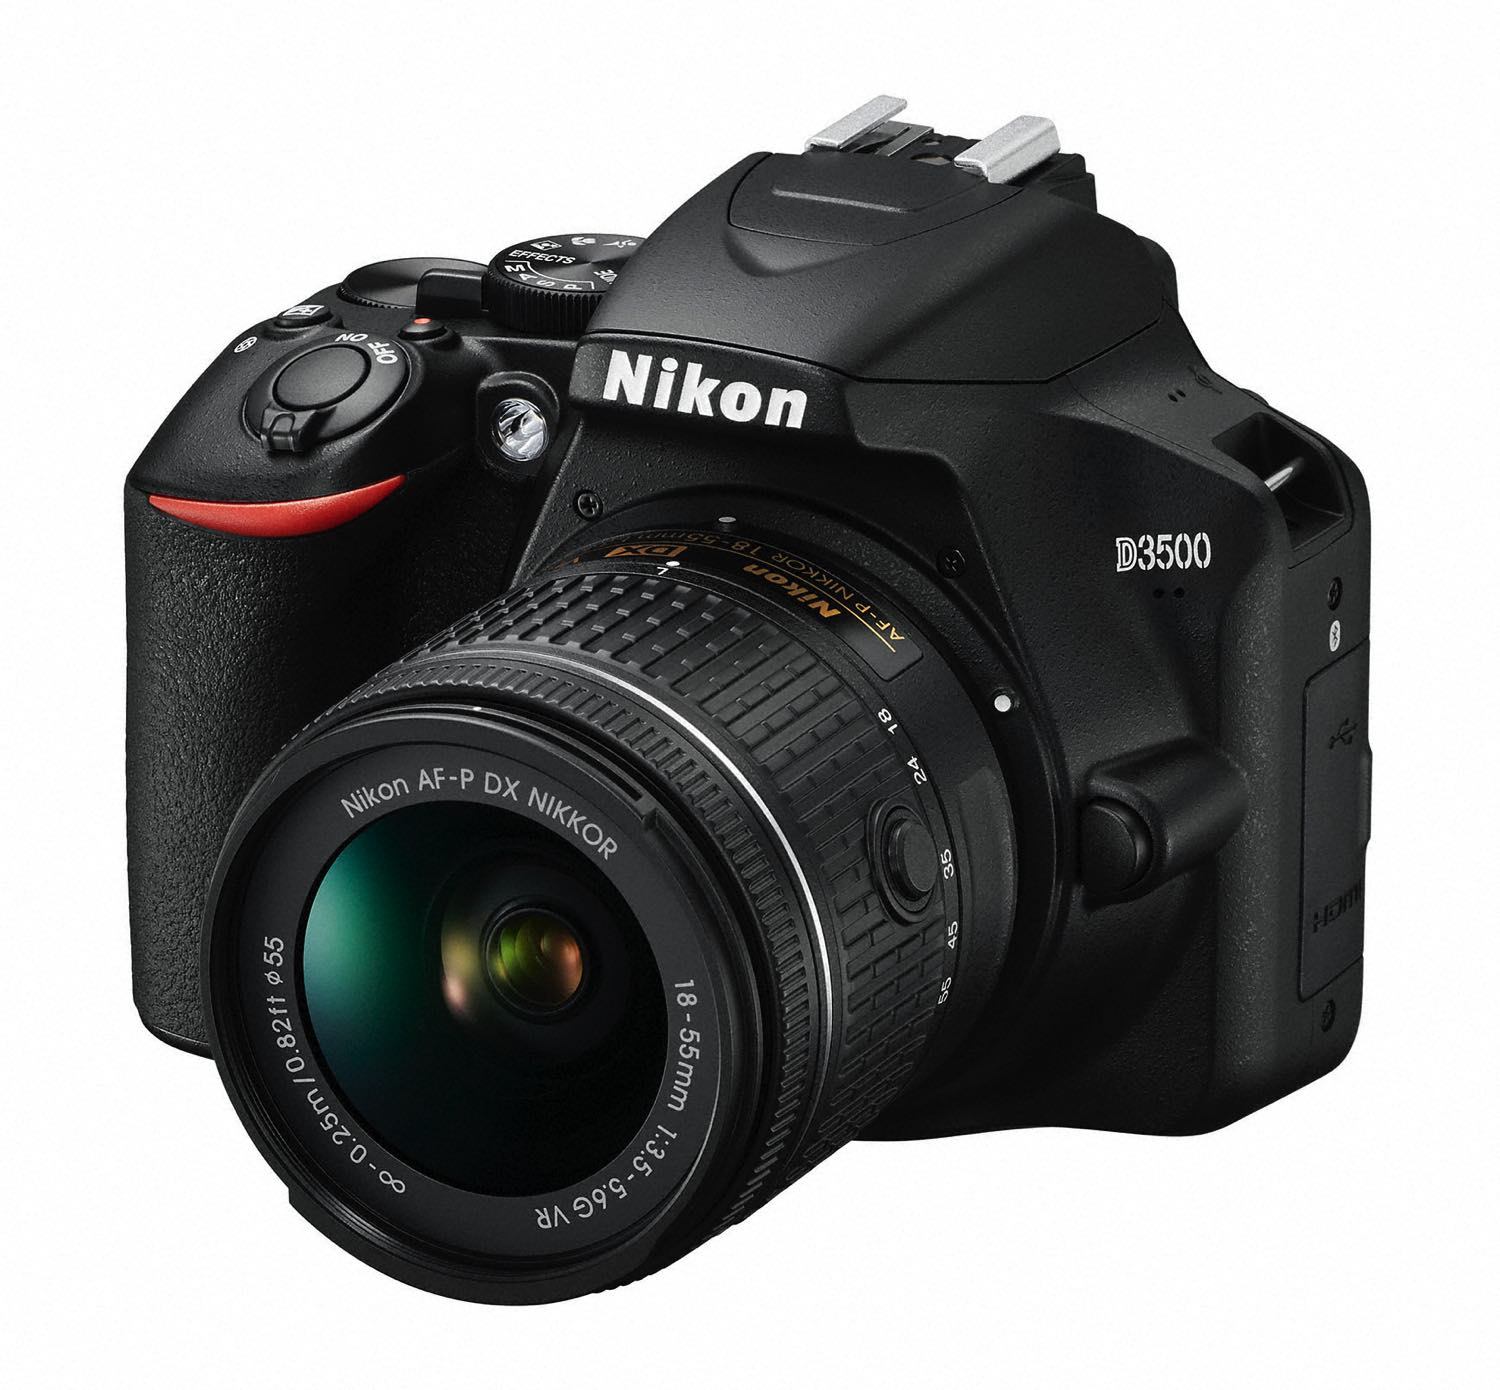 Turn moments into memories with the new Nikon D3500